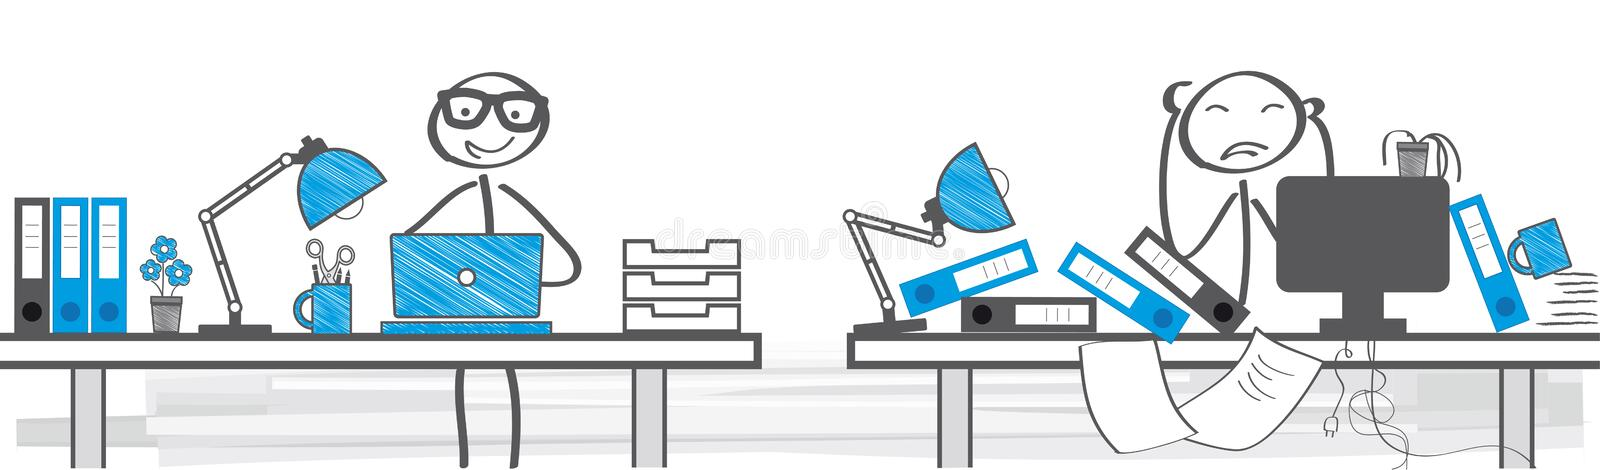 Different ways of working. Two Different Ways To Work - illustration stock illustration